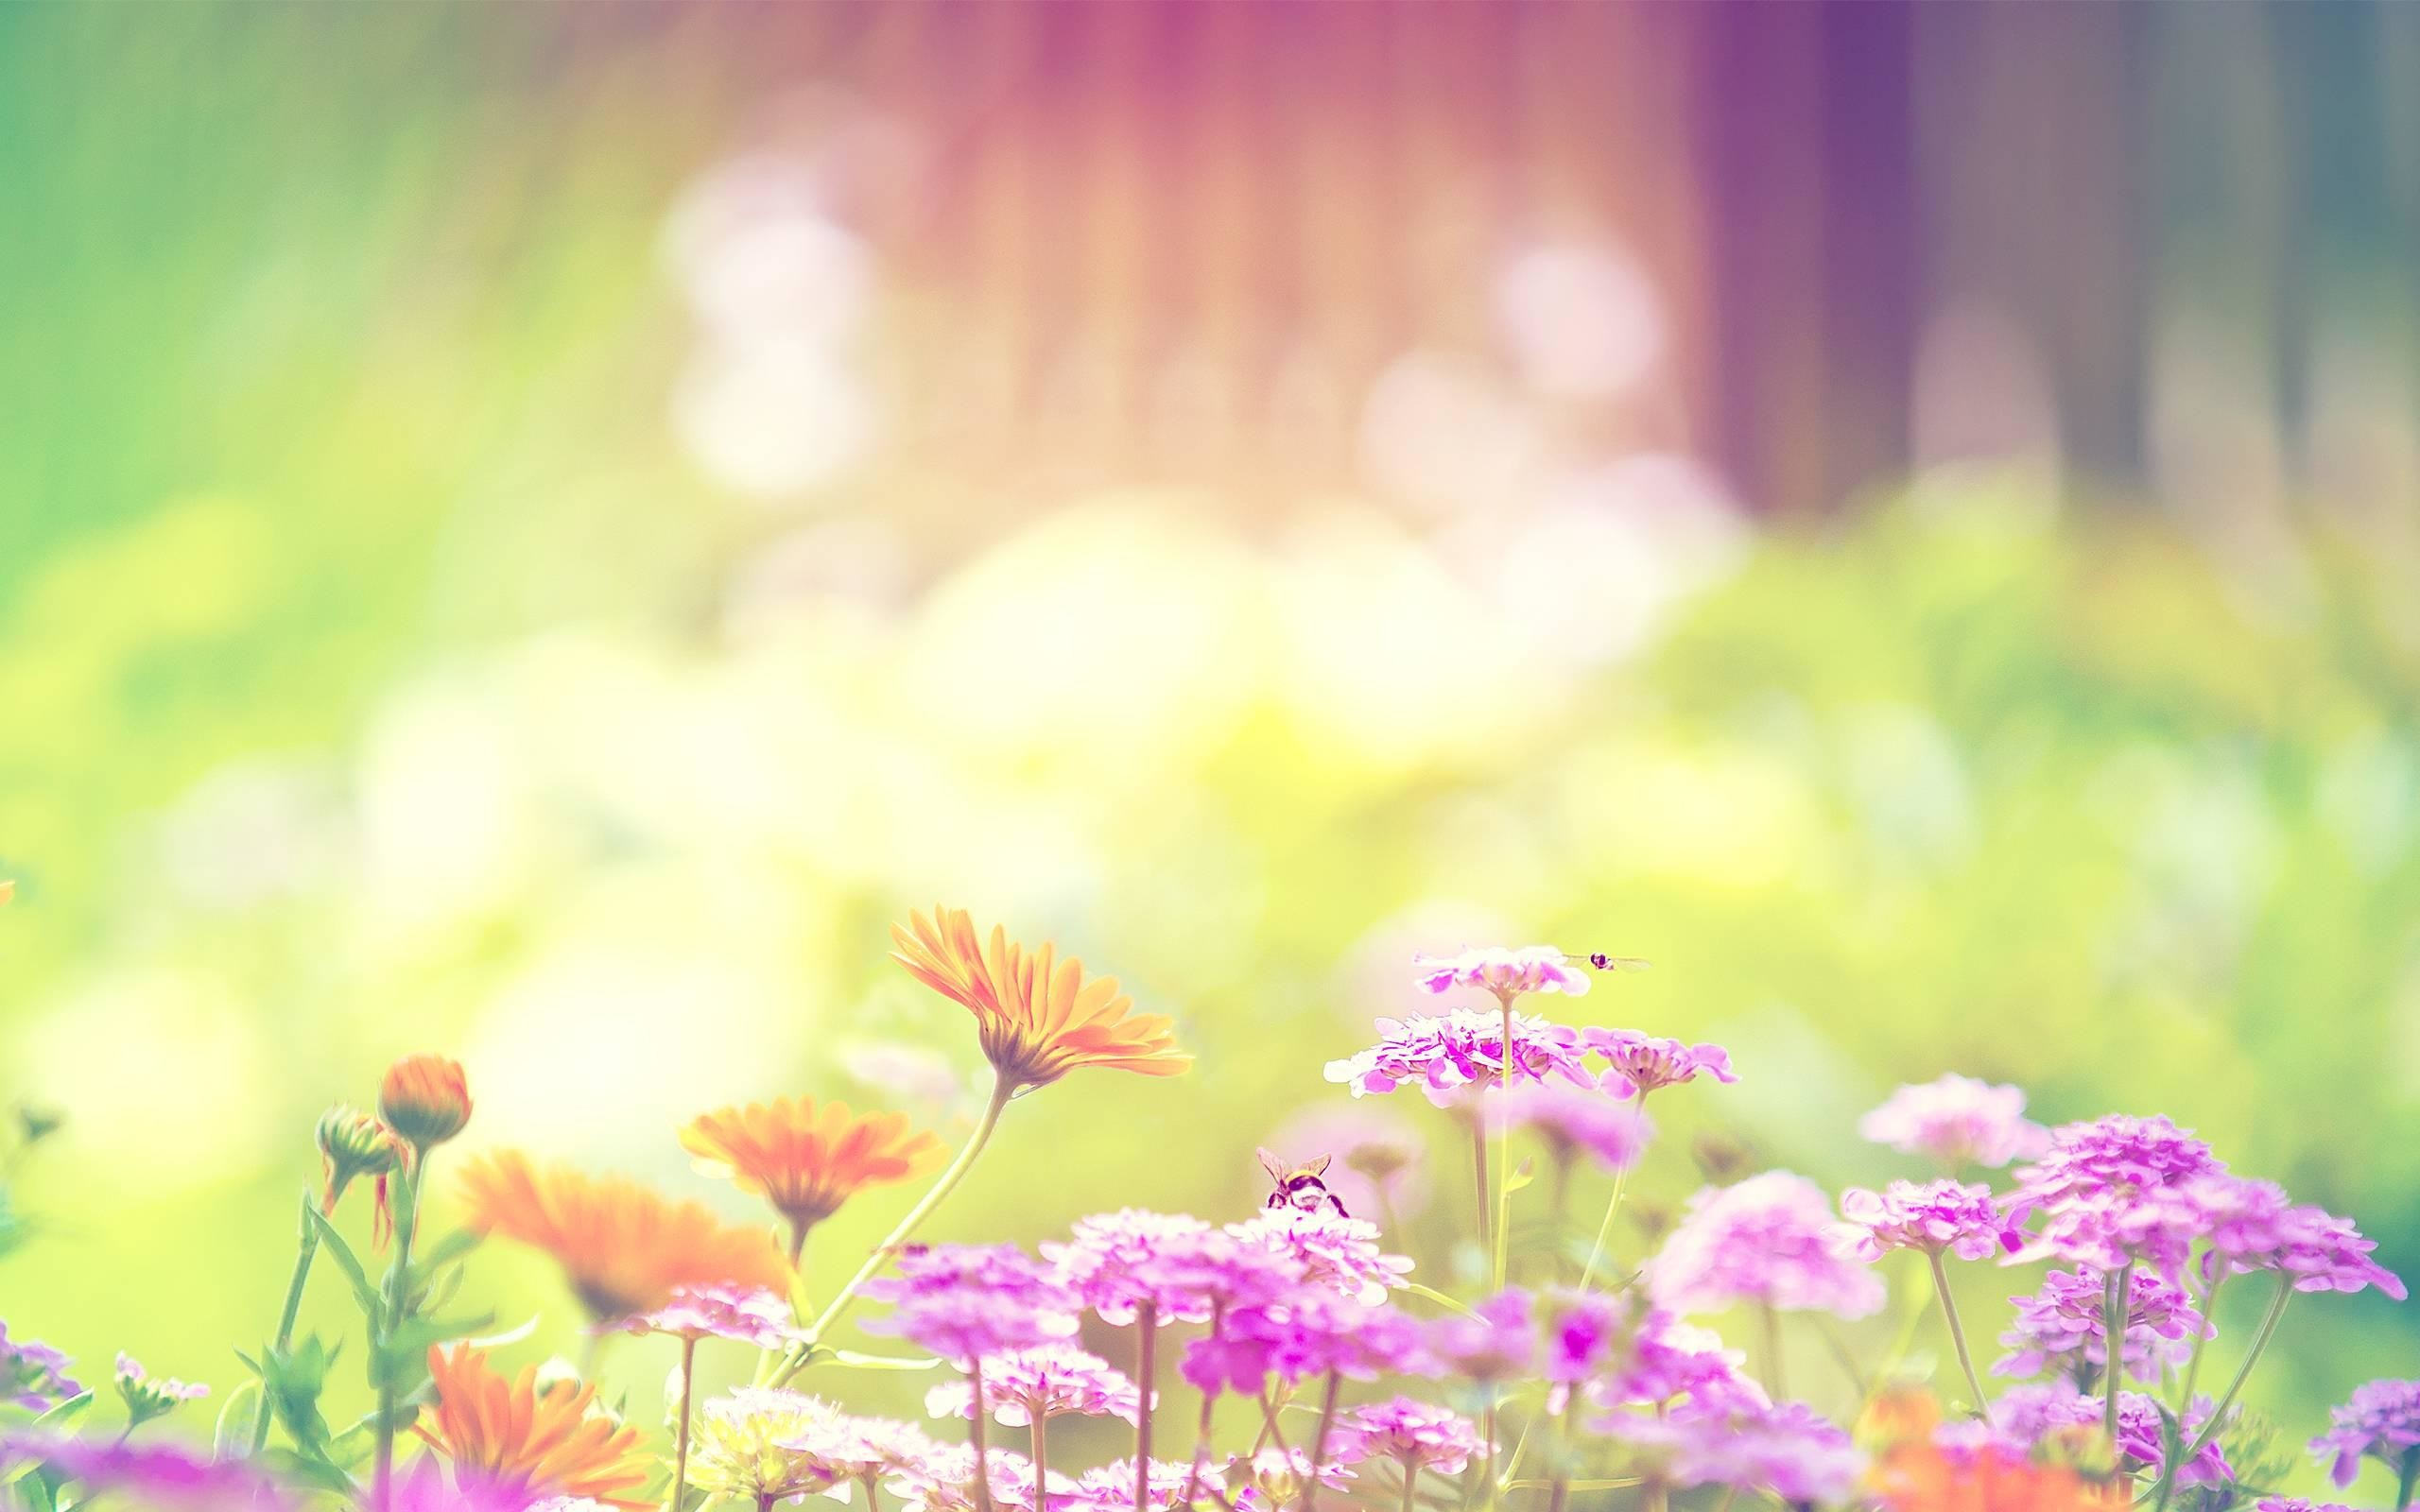 Cute Spring Backgrounds 43 images 2560x1600